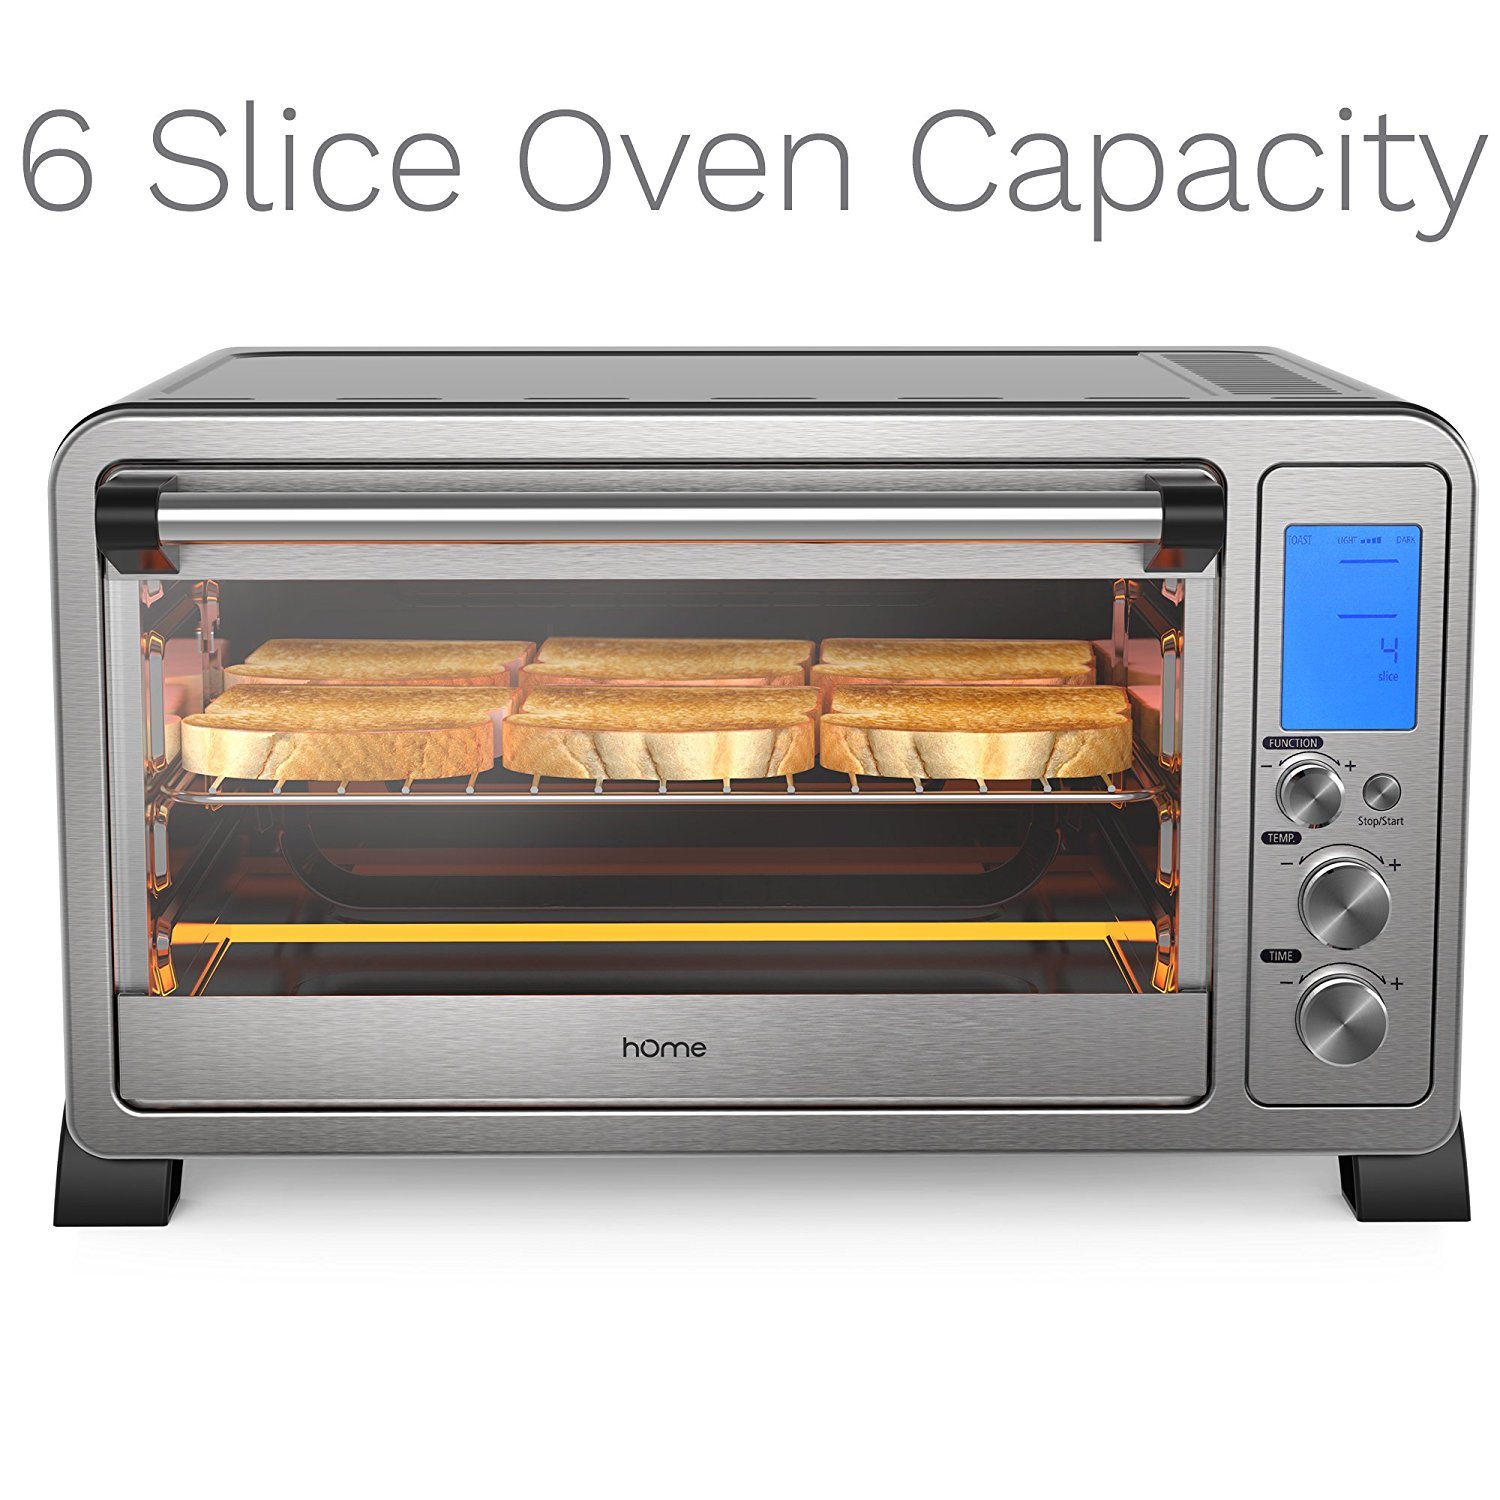 Countertop Roaster Oven Homelabs 6 Slice Convection Toaster Oven Stainless Steel